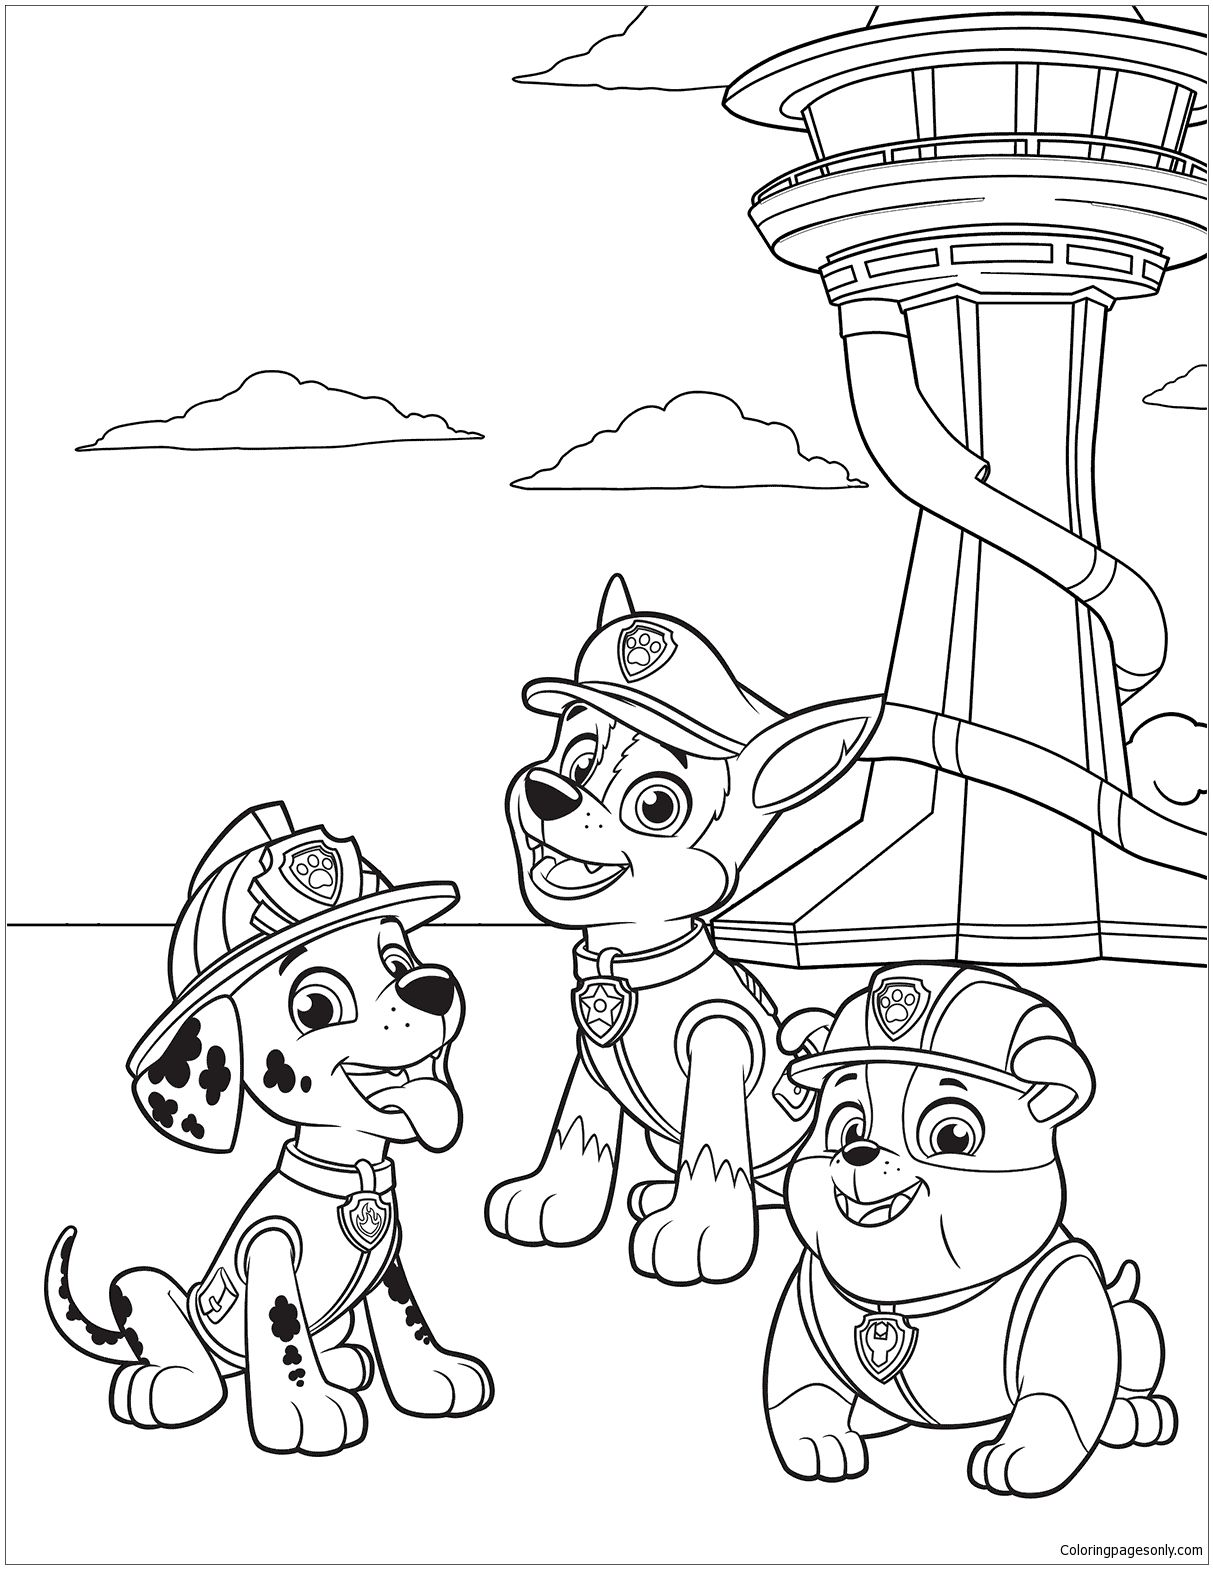 430 Church Ideas Coloring Pages